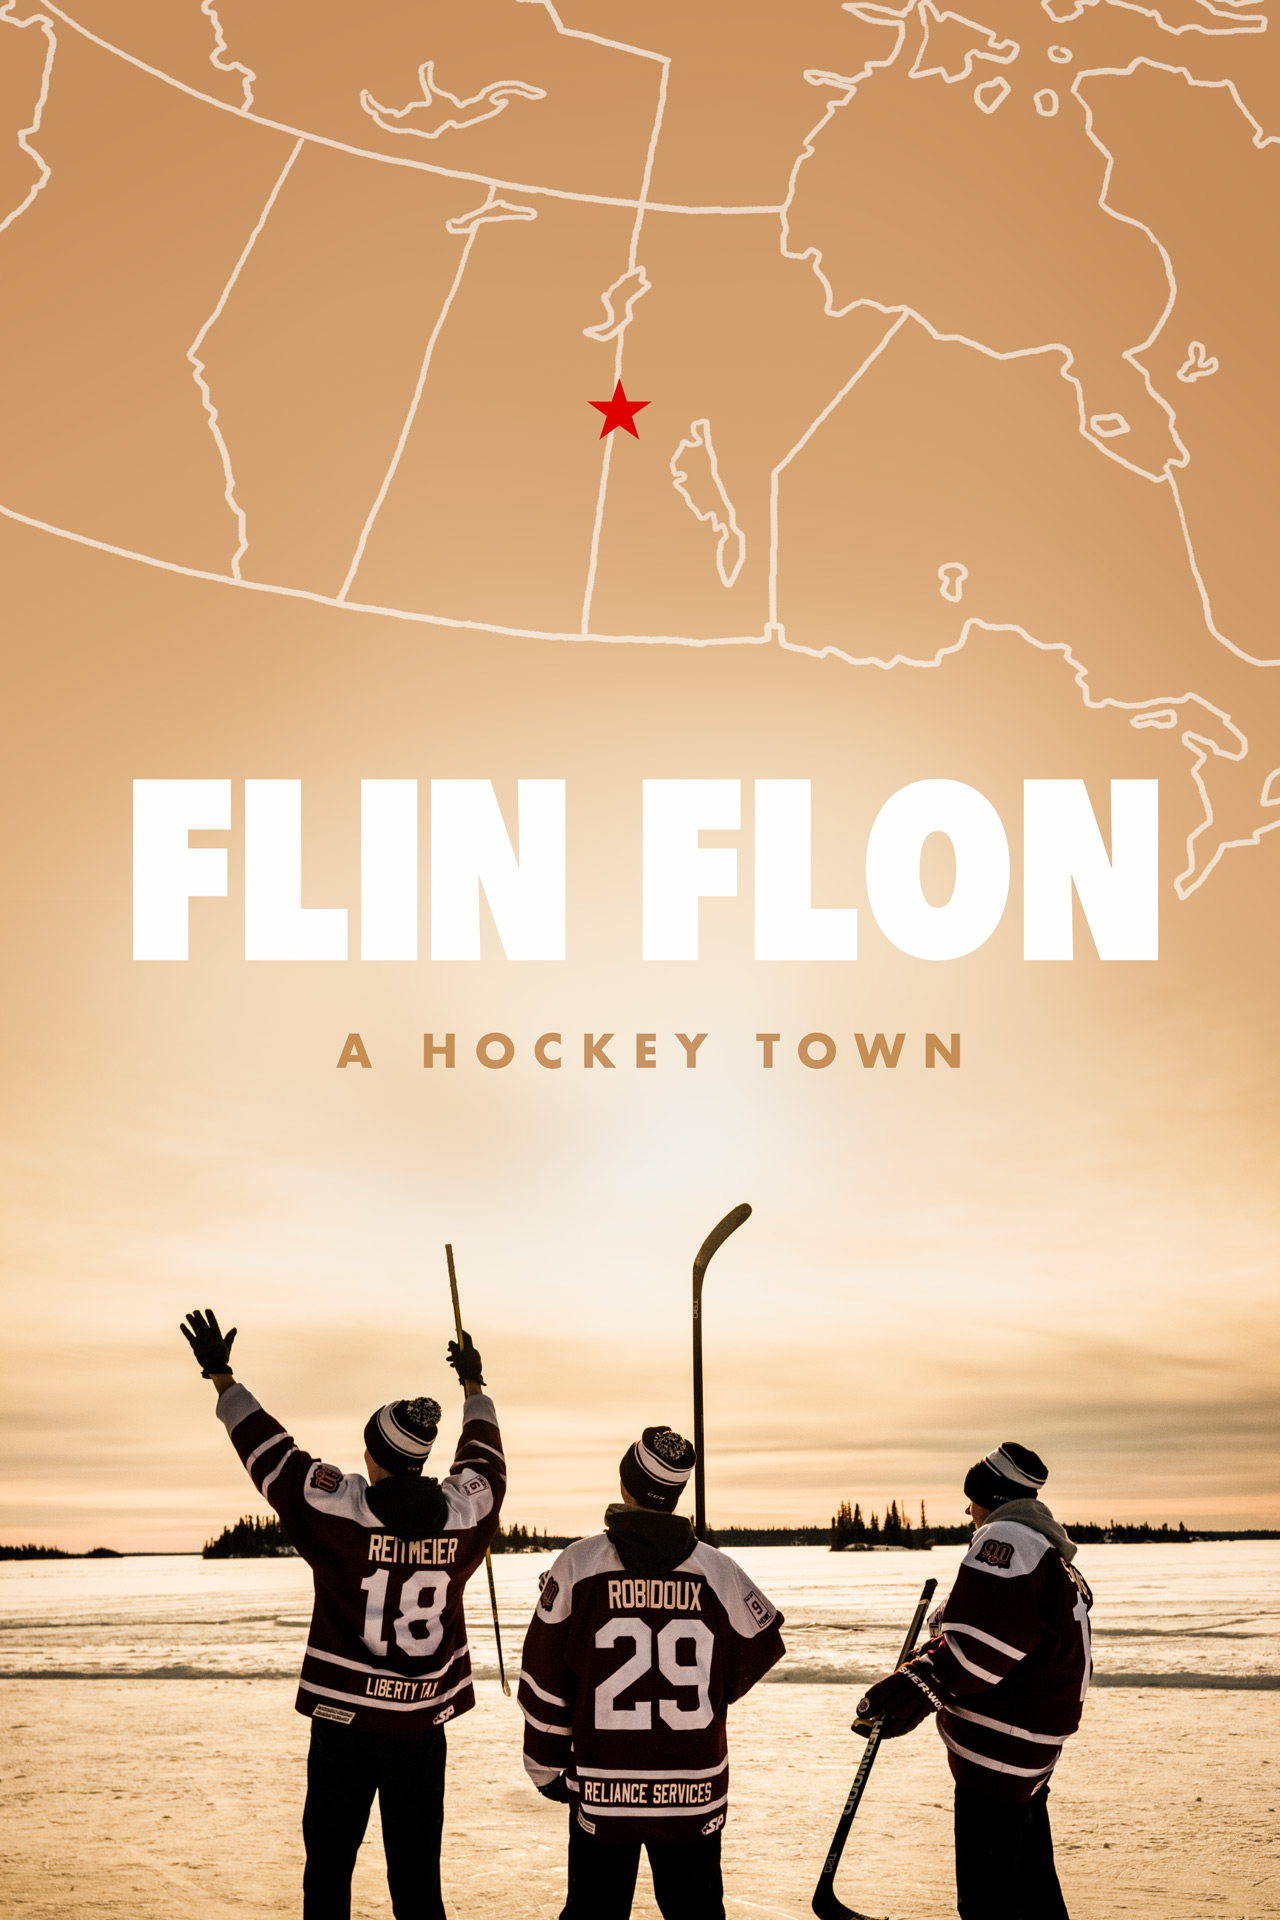 - Flin Flon, Manitoba is located nearly 1000 kilometers north of the US border in Central Canada. The small mining community is also the only city in the world to be named after a science fiction character: Josiah Flintabbatey Flonatin from 'The Sunless City.'Flin Flon: A Hockey Town explores the town's eccentric obsession with its legendary junior hockey team, The Flin Flon Bombers and how the team and the community thrive off one another. The Bombers organization dates back to 1927 and many legendary NHL players were born and played in Flin Flon including Bobby Clarke, Reggie Leach, and Gerry Hart.Director: Dustin CohenProducer: Jenn SharpeDirectors of Photography: Soren Nielsen, Christine NgEditor: Kathy GattoComposer: Jim EnglishColorist: Kath Raisch @ Company 3Sound Designer: Raphael AjuelosFor inquiries, please contactDustin Cohendustin@cohen.net+1-646-465-4116